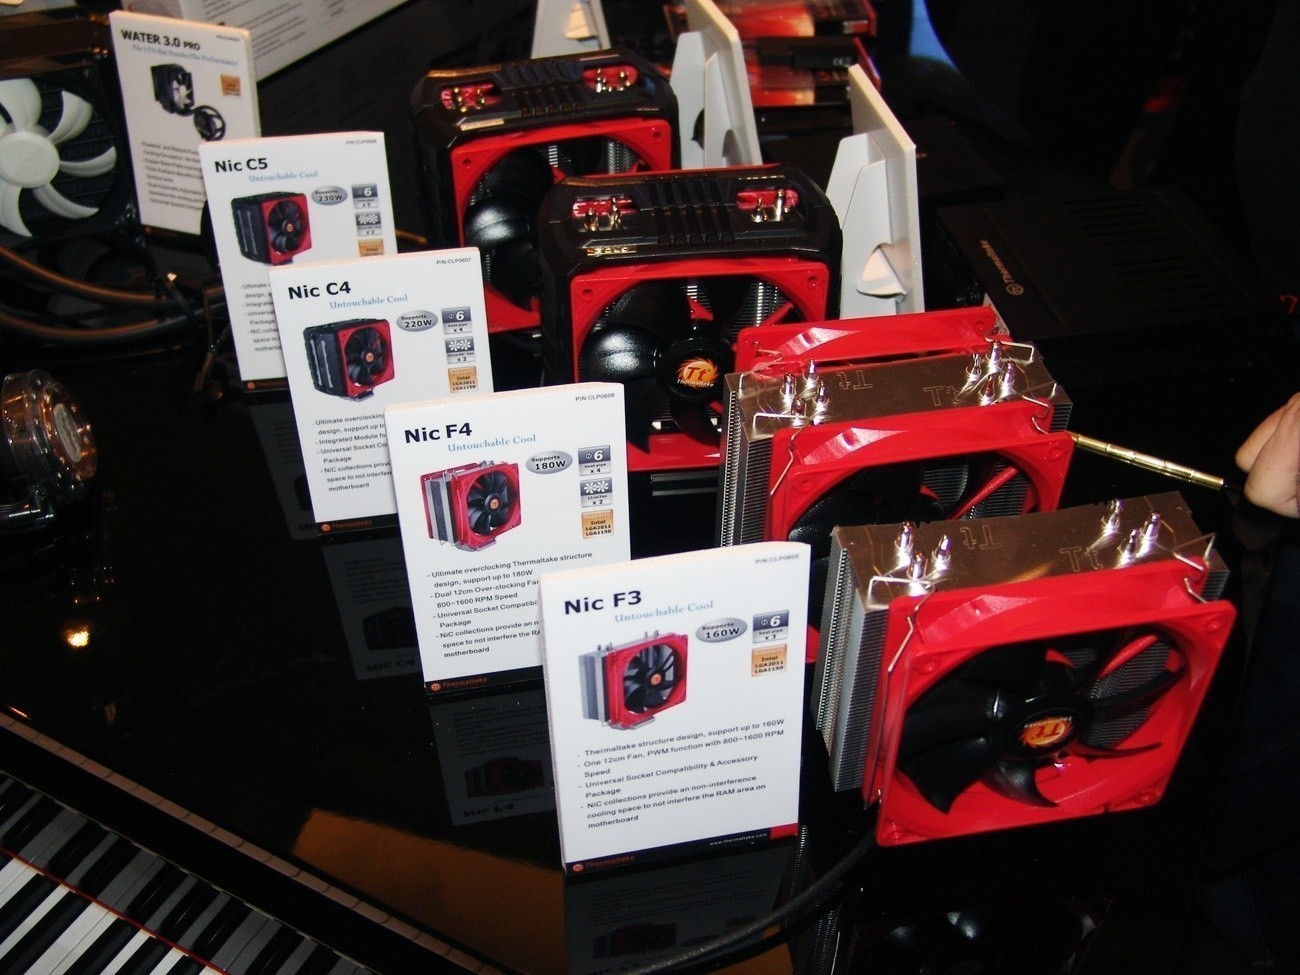 a_look_at_thermaltake_s_new_cooling_products_at_ces_2013